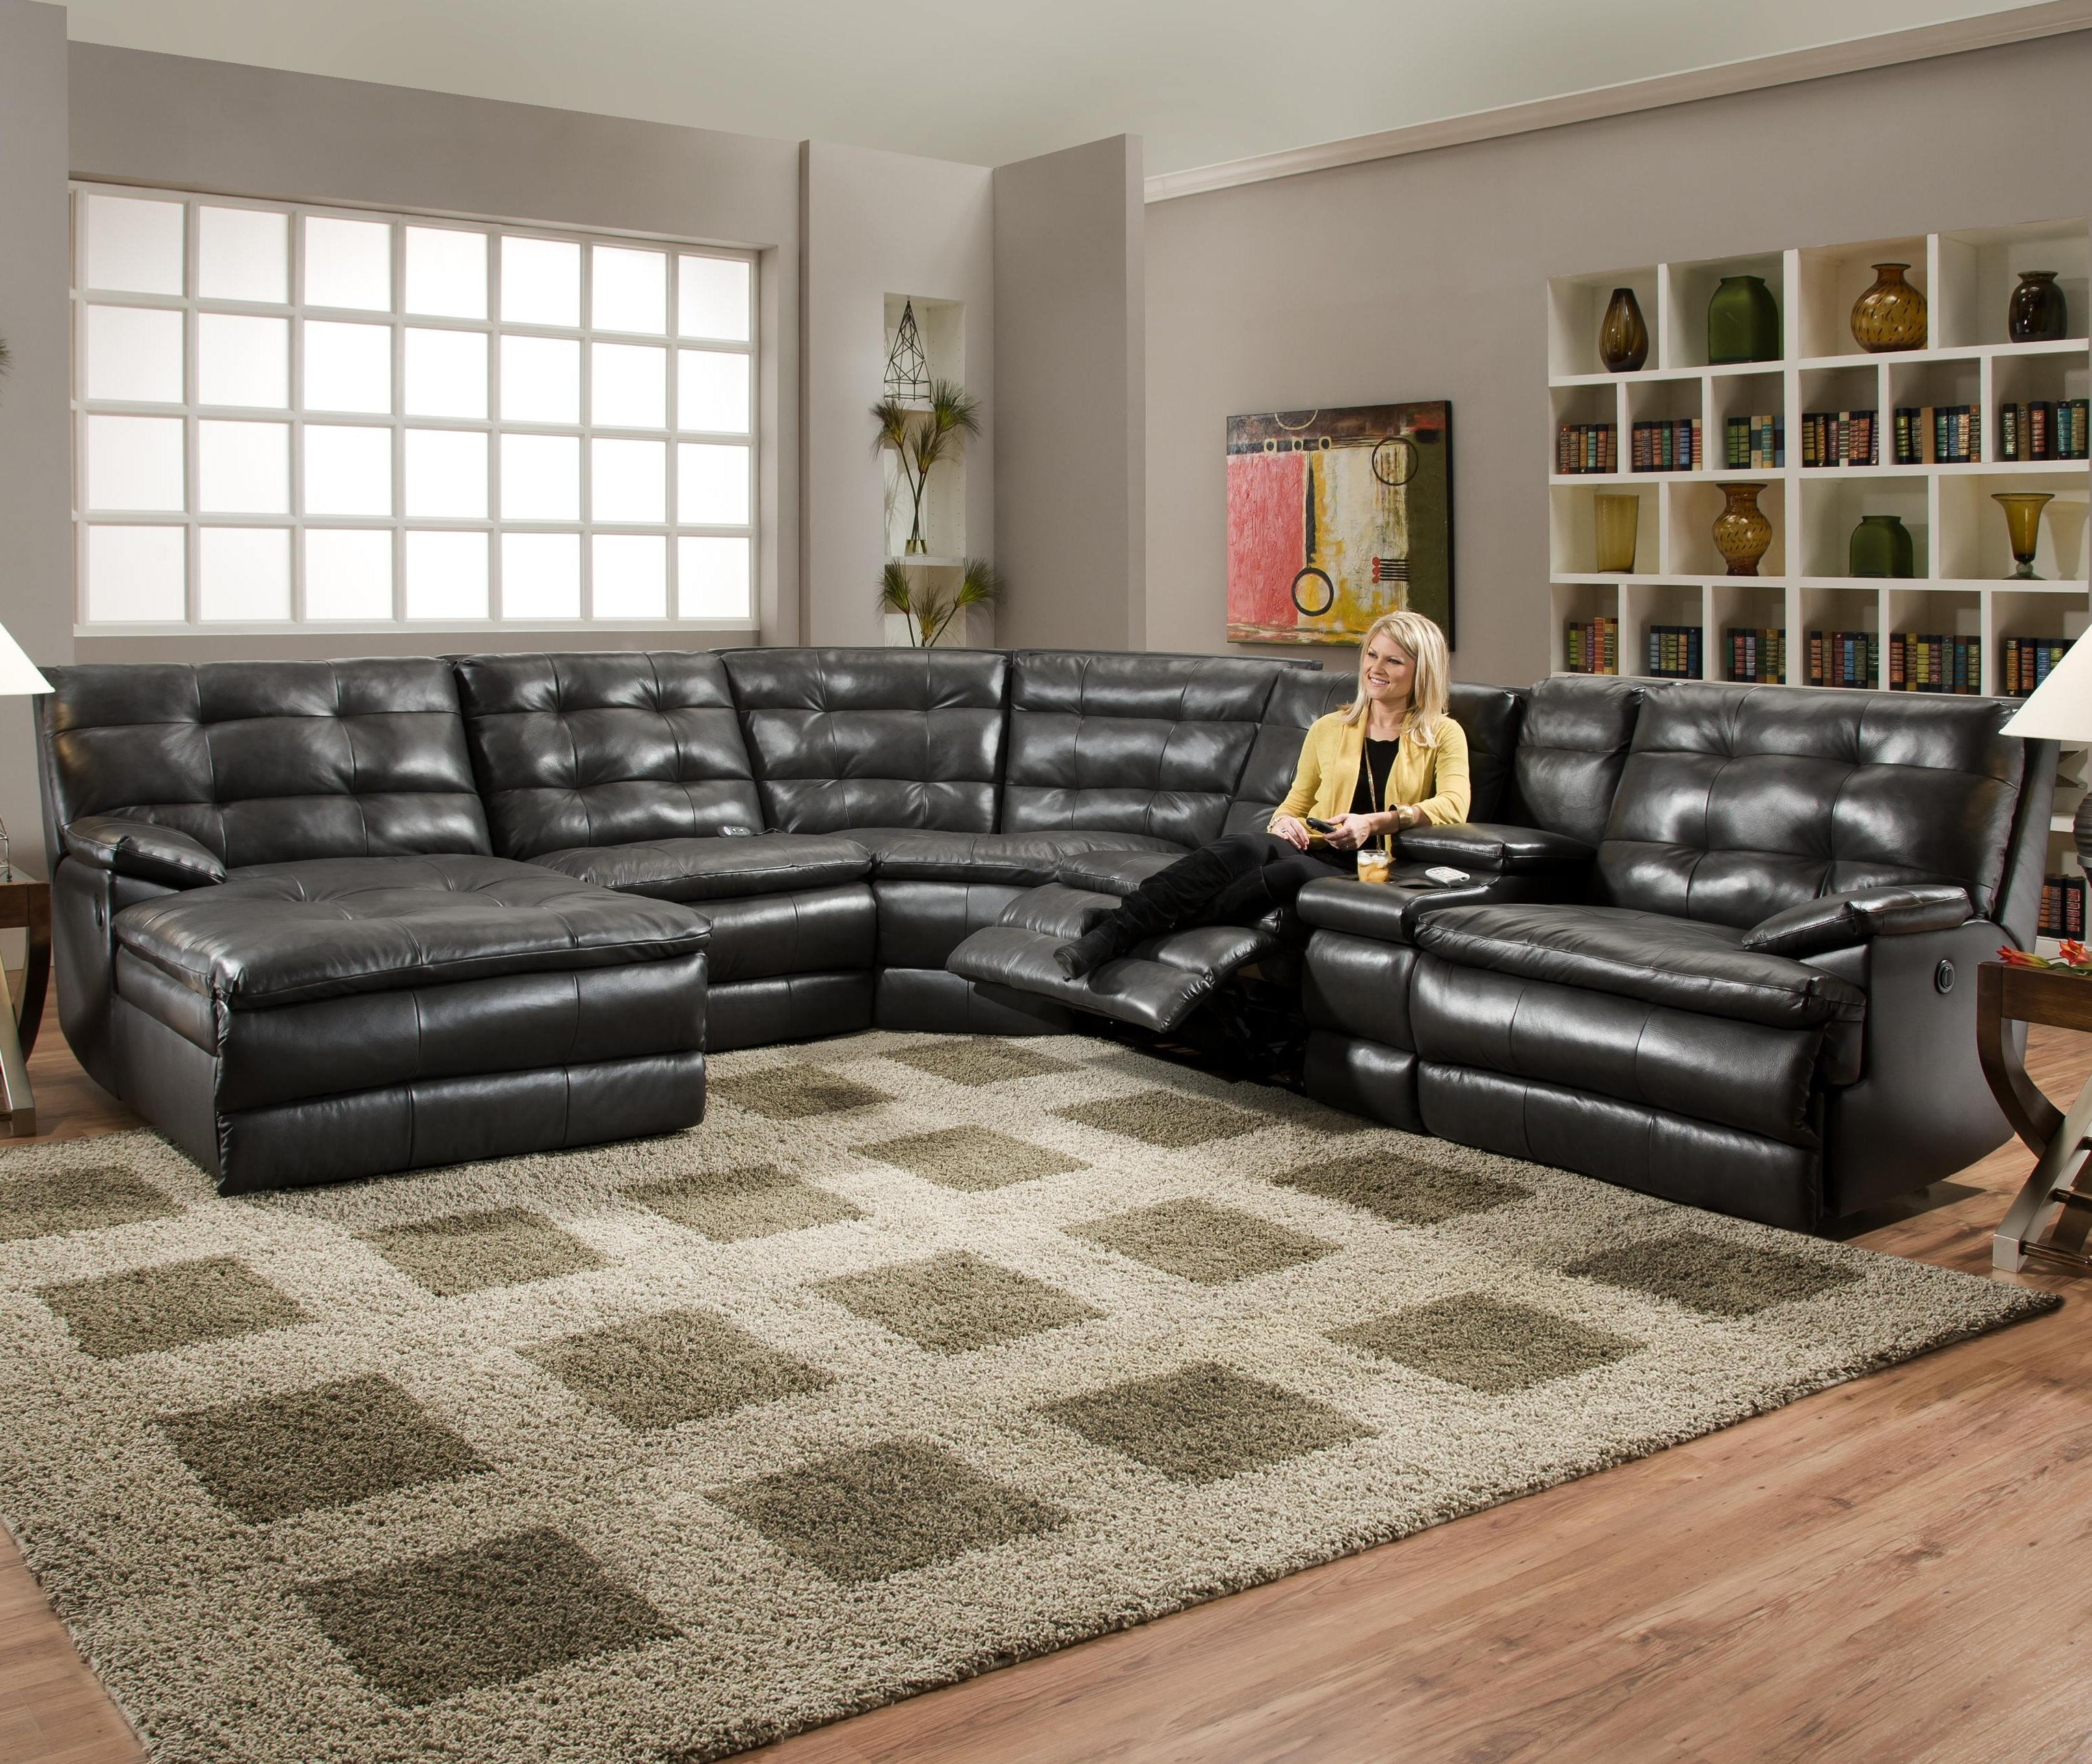 Most Comfortable Sofa Reviews Oversized Deep Couch U Shaped Sofa Throughout Well Known Deep U Shaped Sectionals (View 8 of 20)